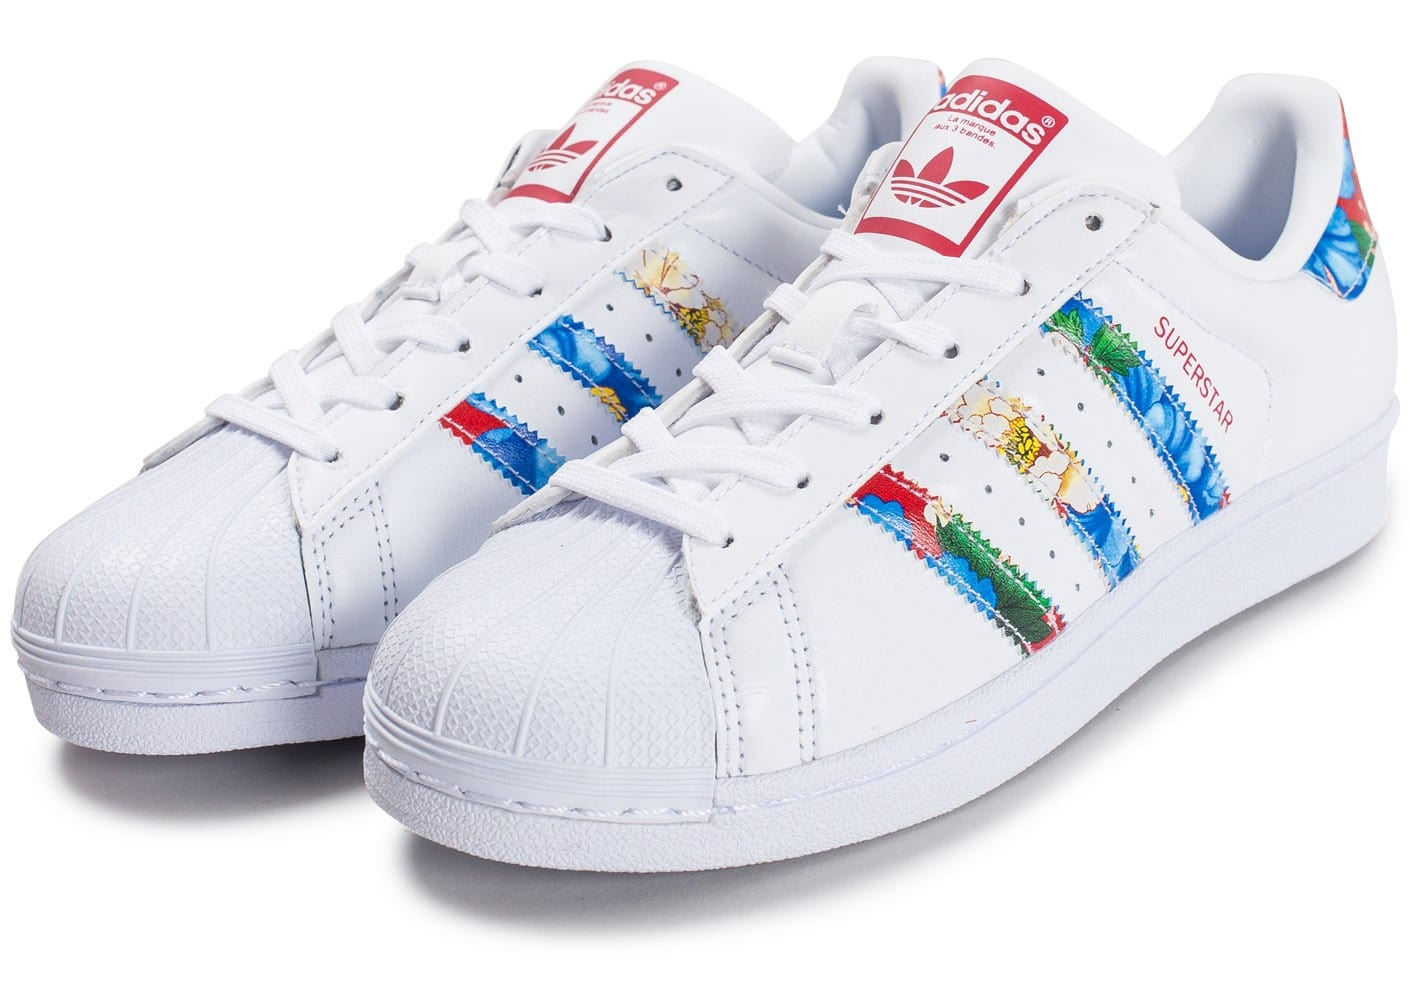 adidas Superstar W Multicolor - Chaussures adidas - Chausport